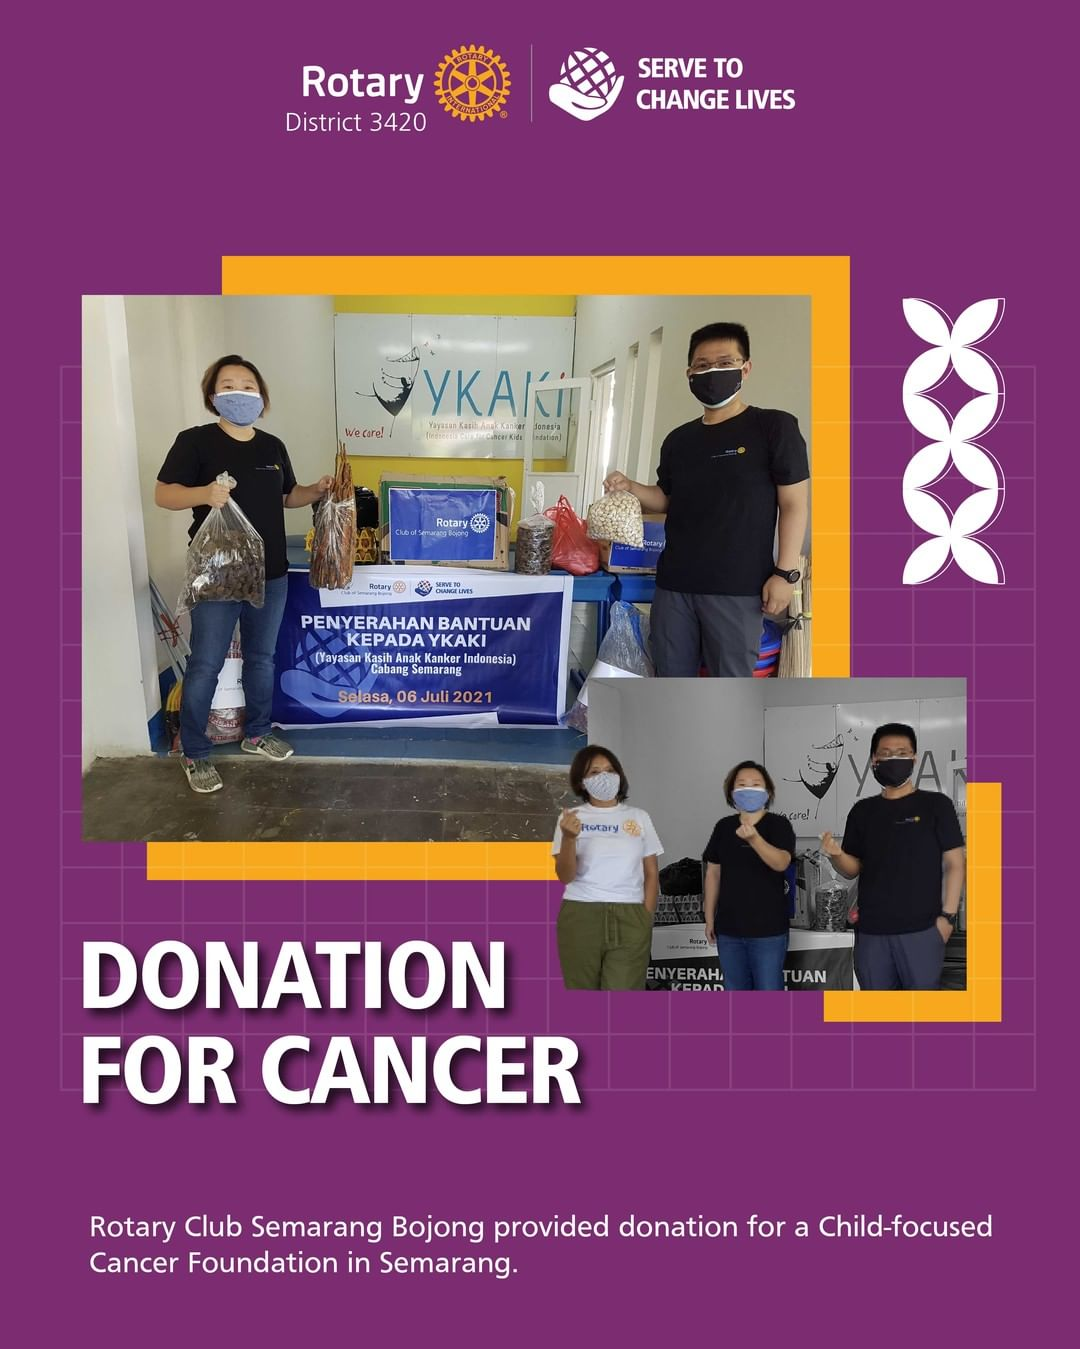 Donation for Cancer